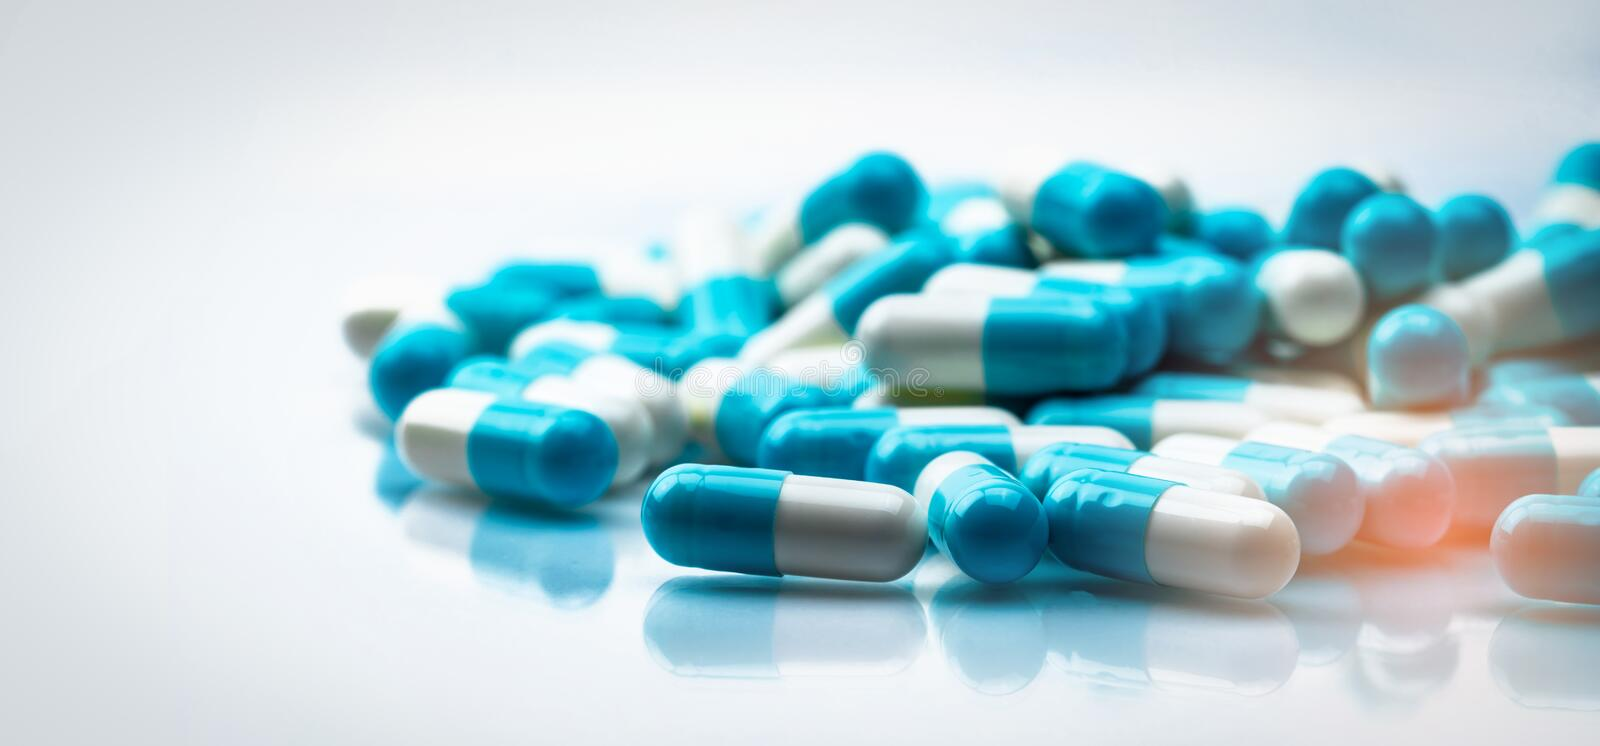 Selective focus on blue and white capsules pill spread on white background with shadow. Global healthcare concept. Antibiotics. Drug resistance. Antimicrobial royalty free stock photos